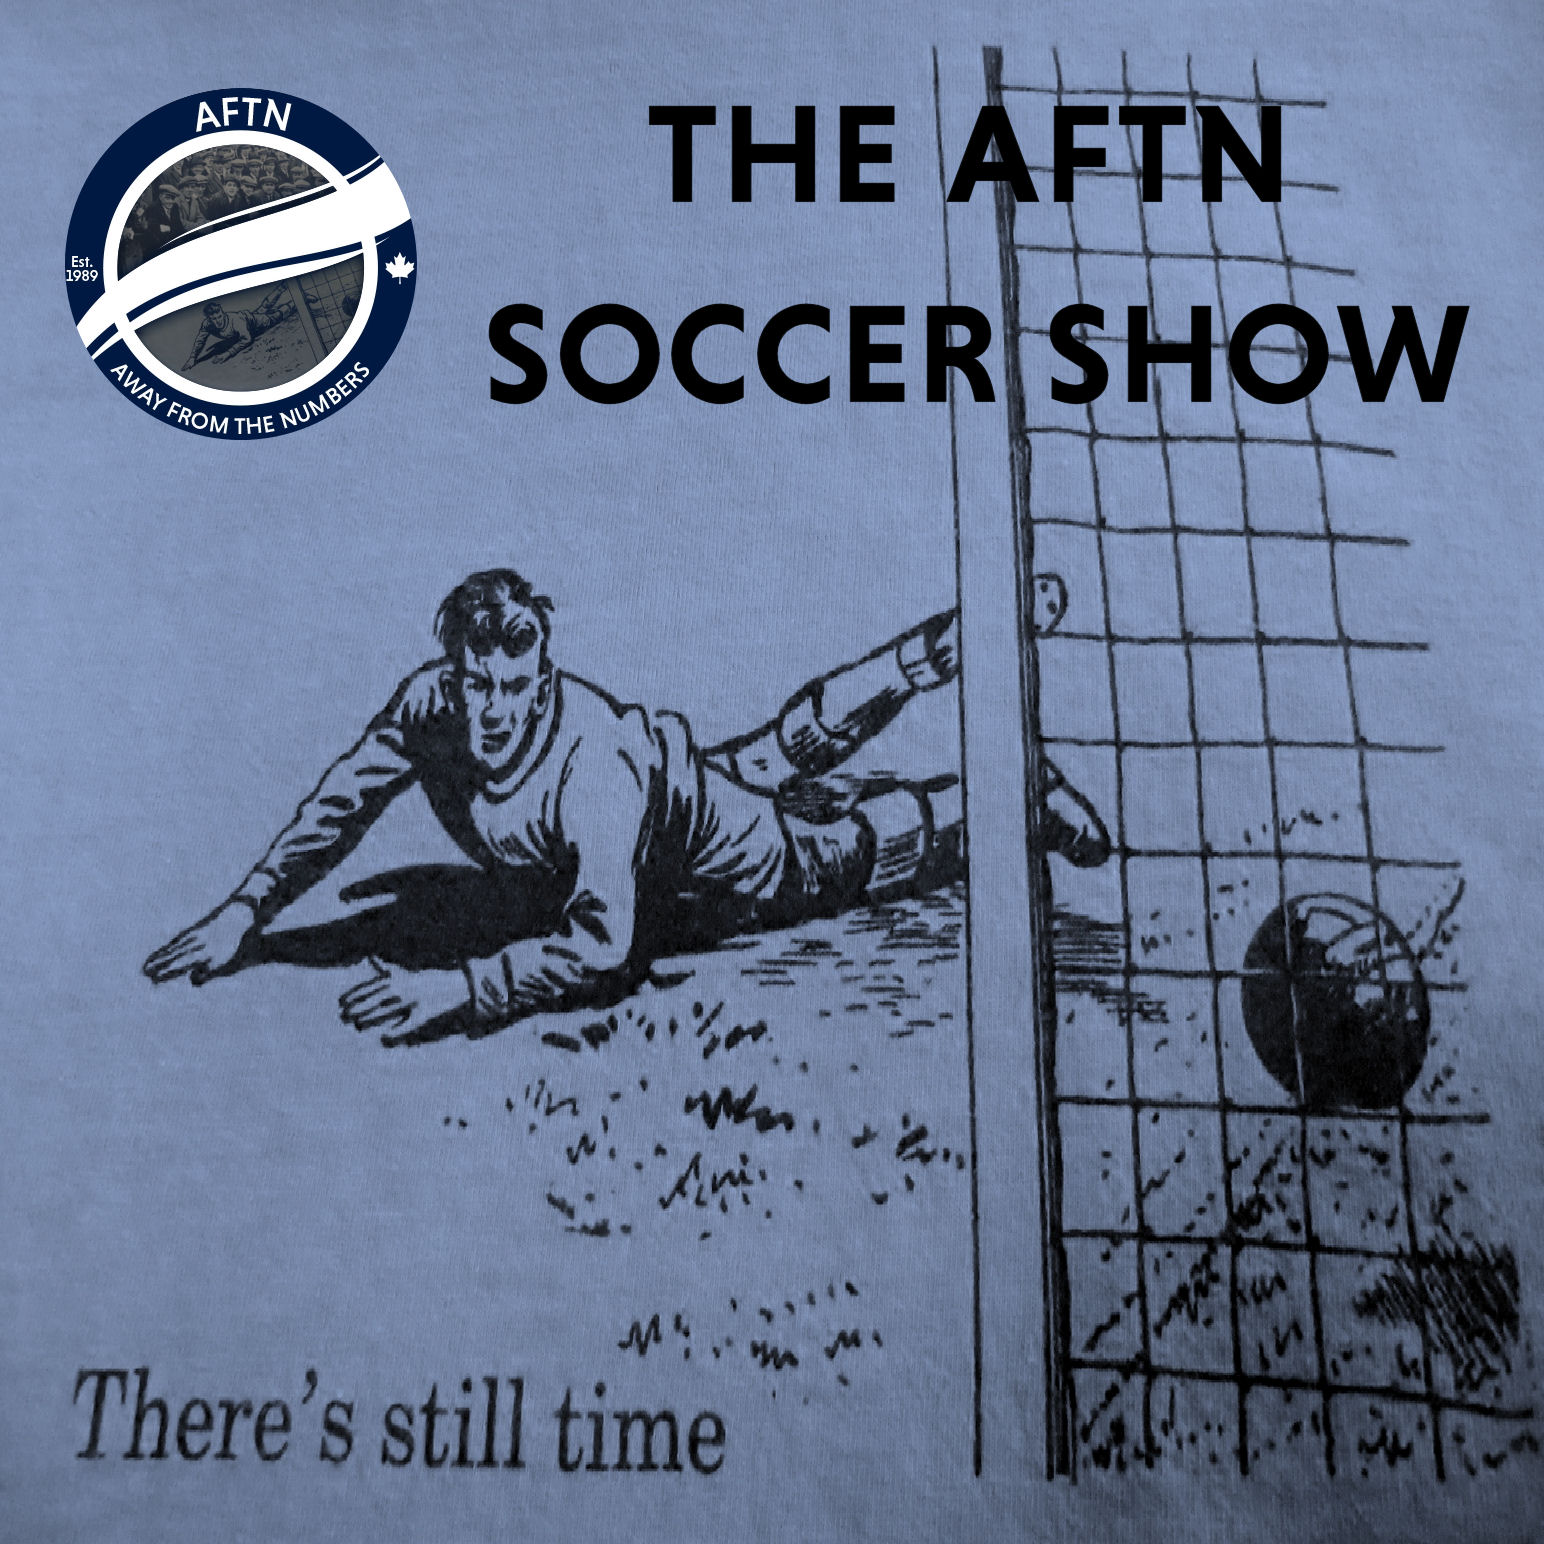 Episode 308 - The AFTN Soccer Show (Dawning Of A New Era with special guest Marc Dos Santos)